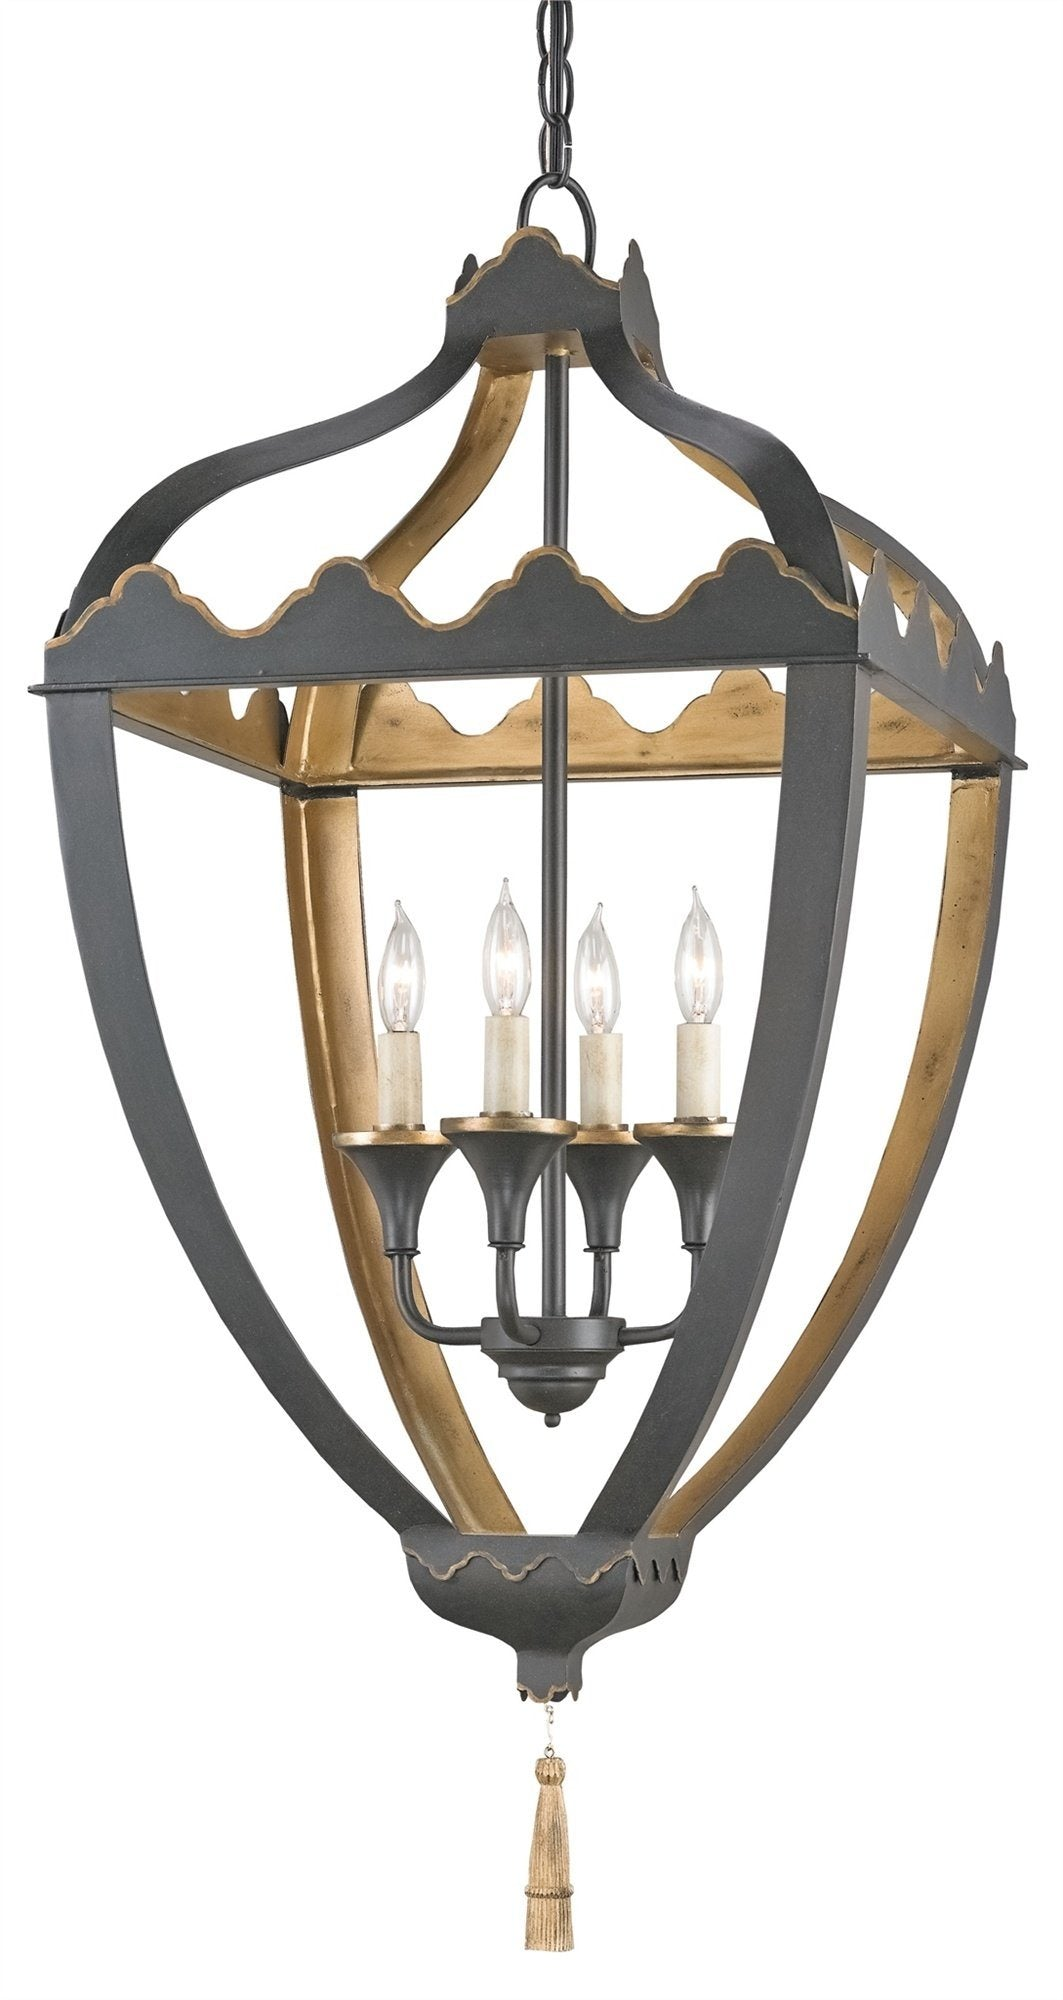 Currey and Company Beaumont Lantern 9341 - LOVECUP